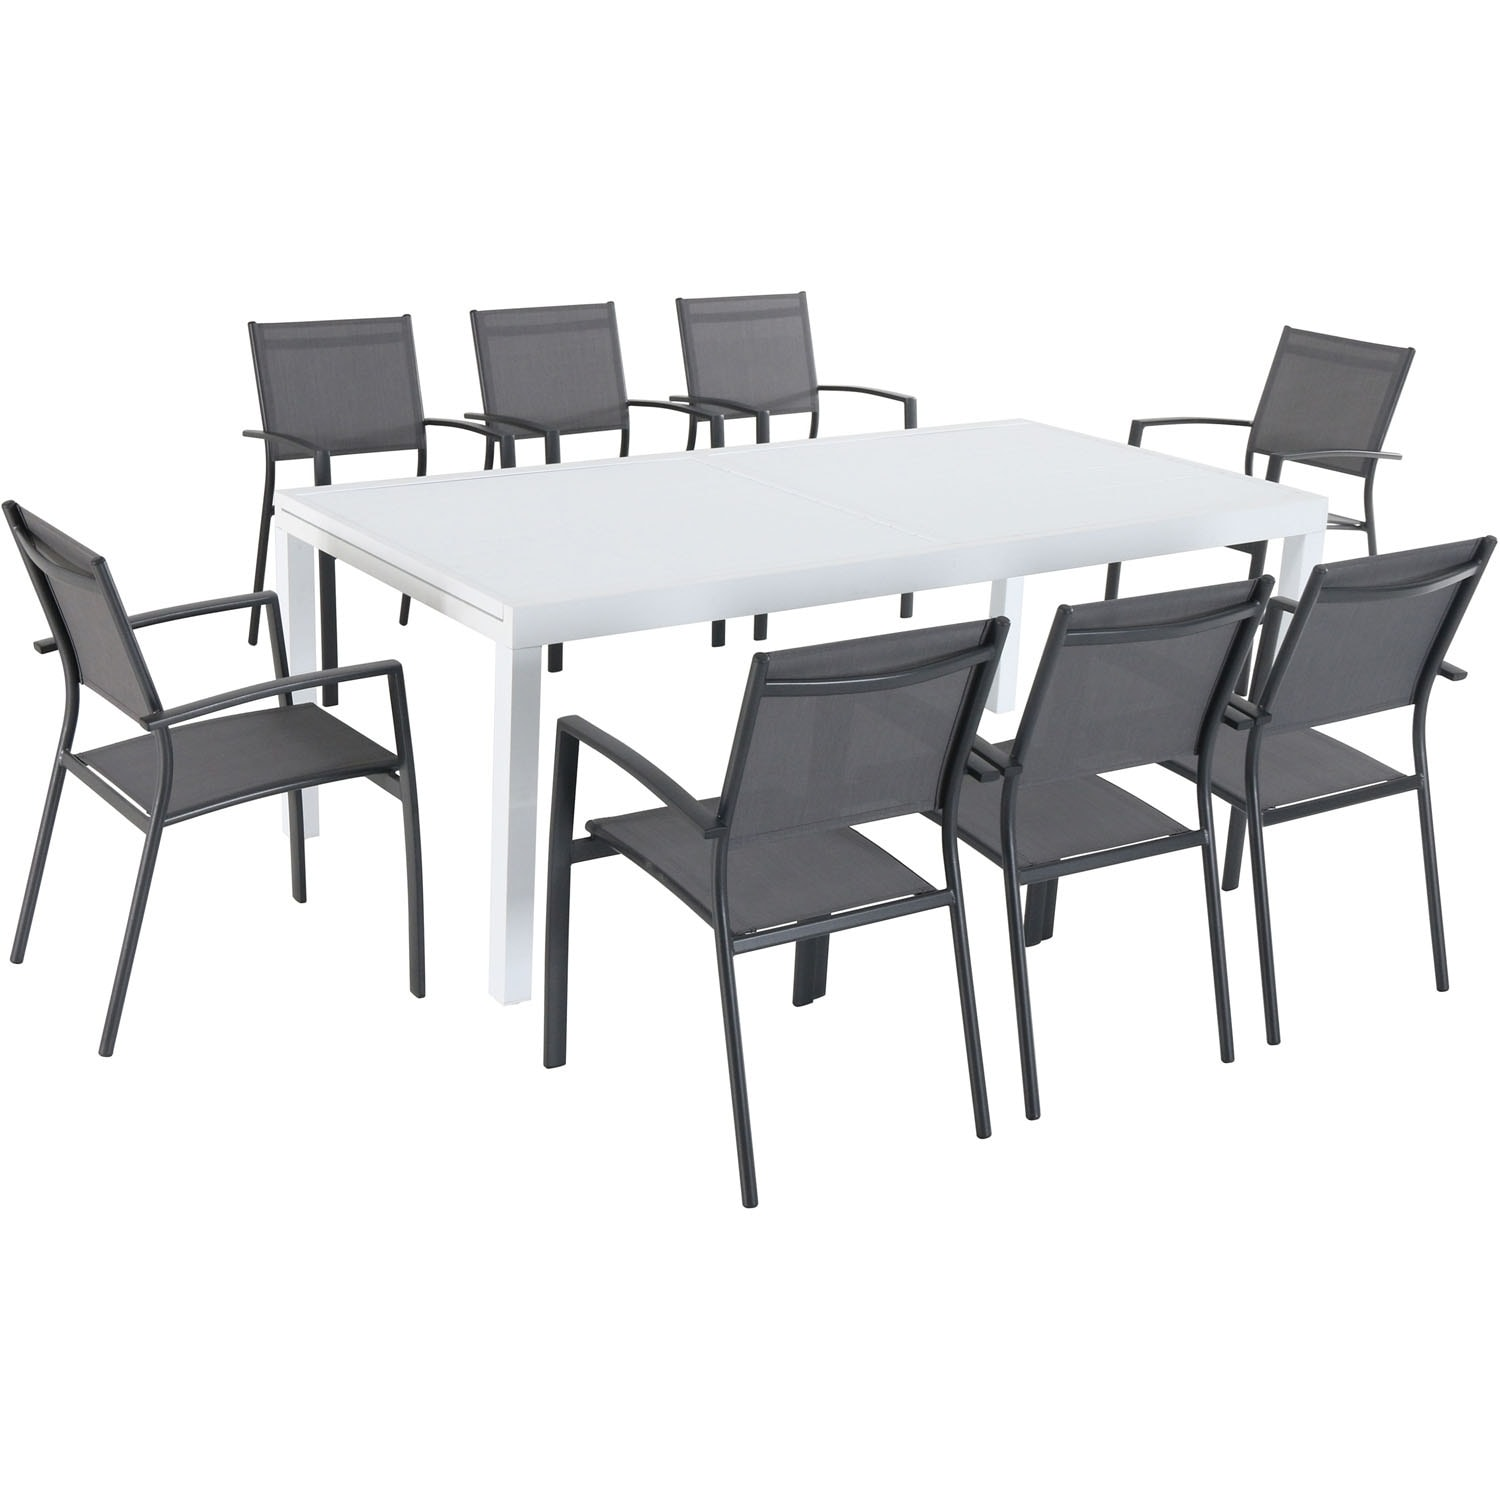 Cambridge Palmero 9-Piece Outdoor Dining Set with 8 Sling Chairs in Gray and a 40 x 118 Expandable Dining Table